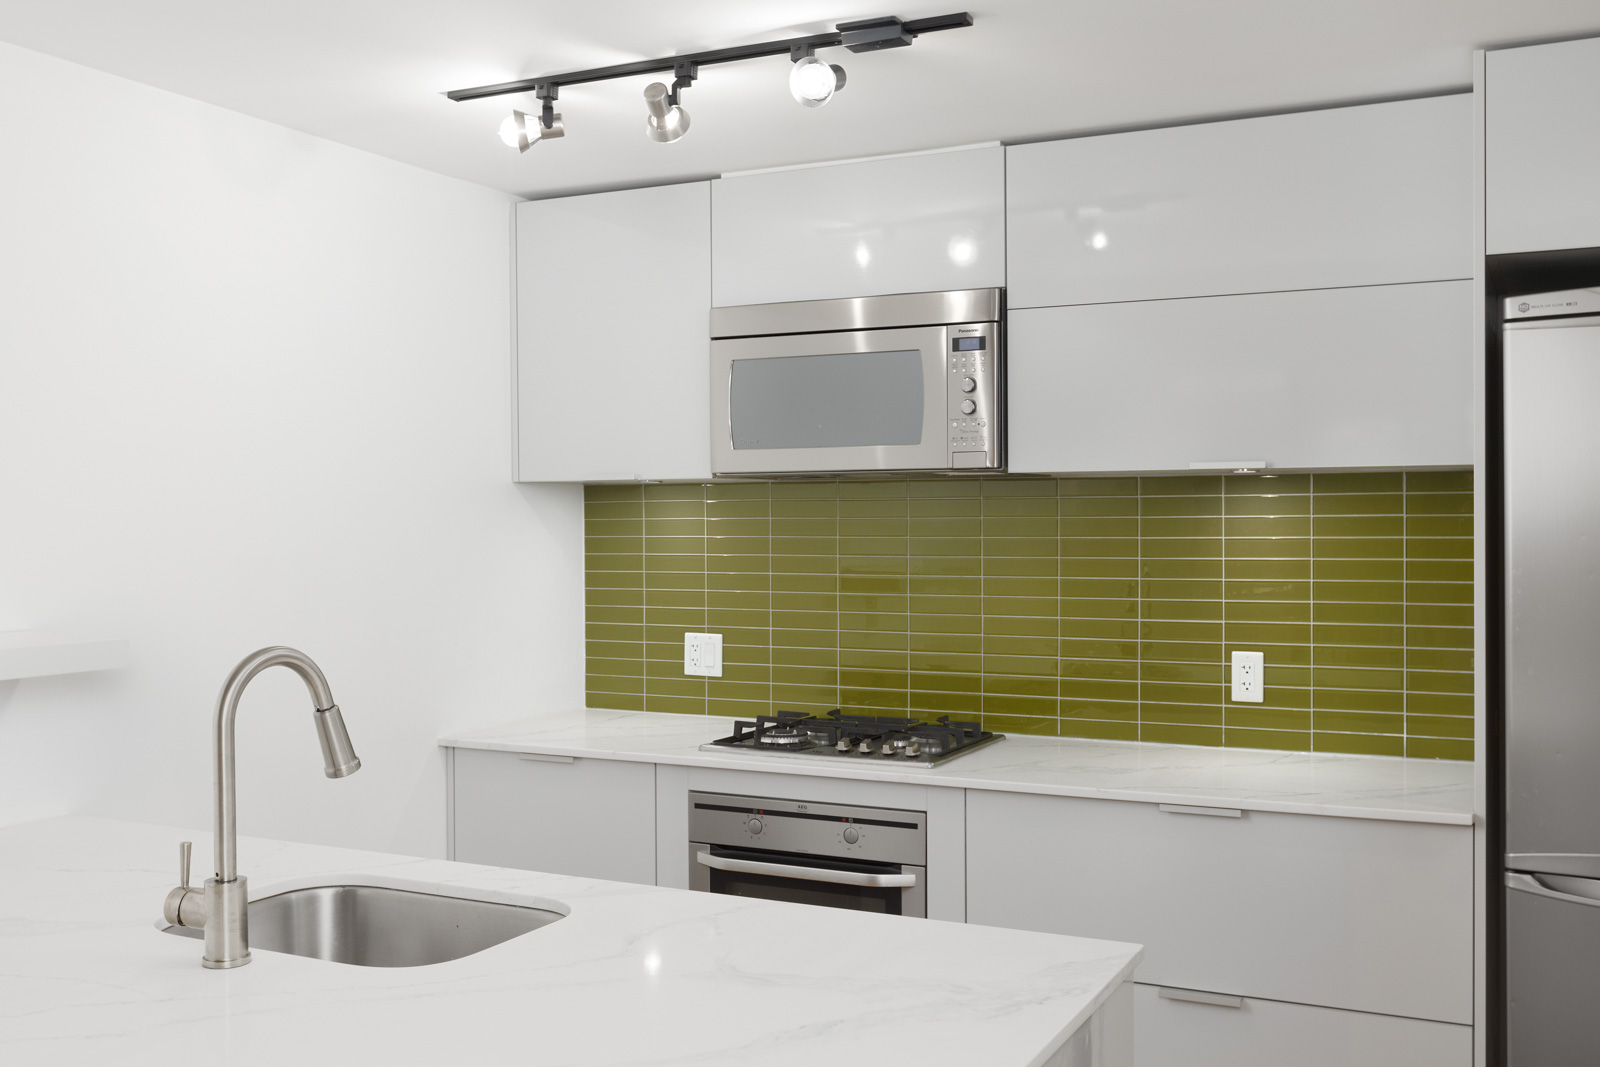 Kichen with high-end appliances in rental managed by Birds Nest Properties